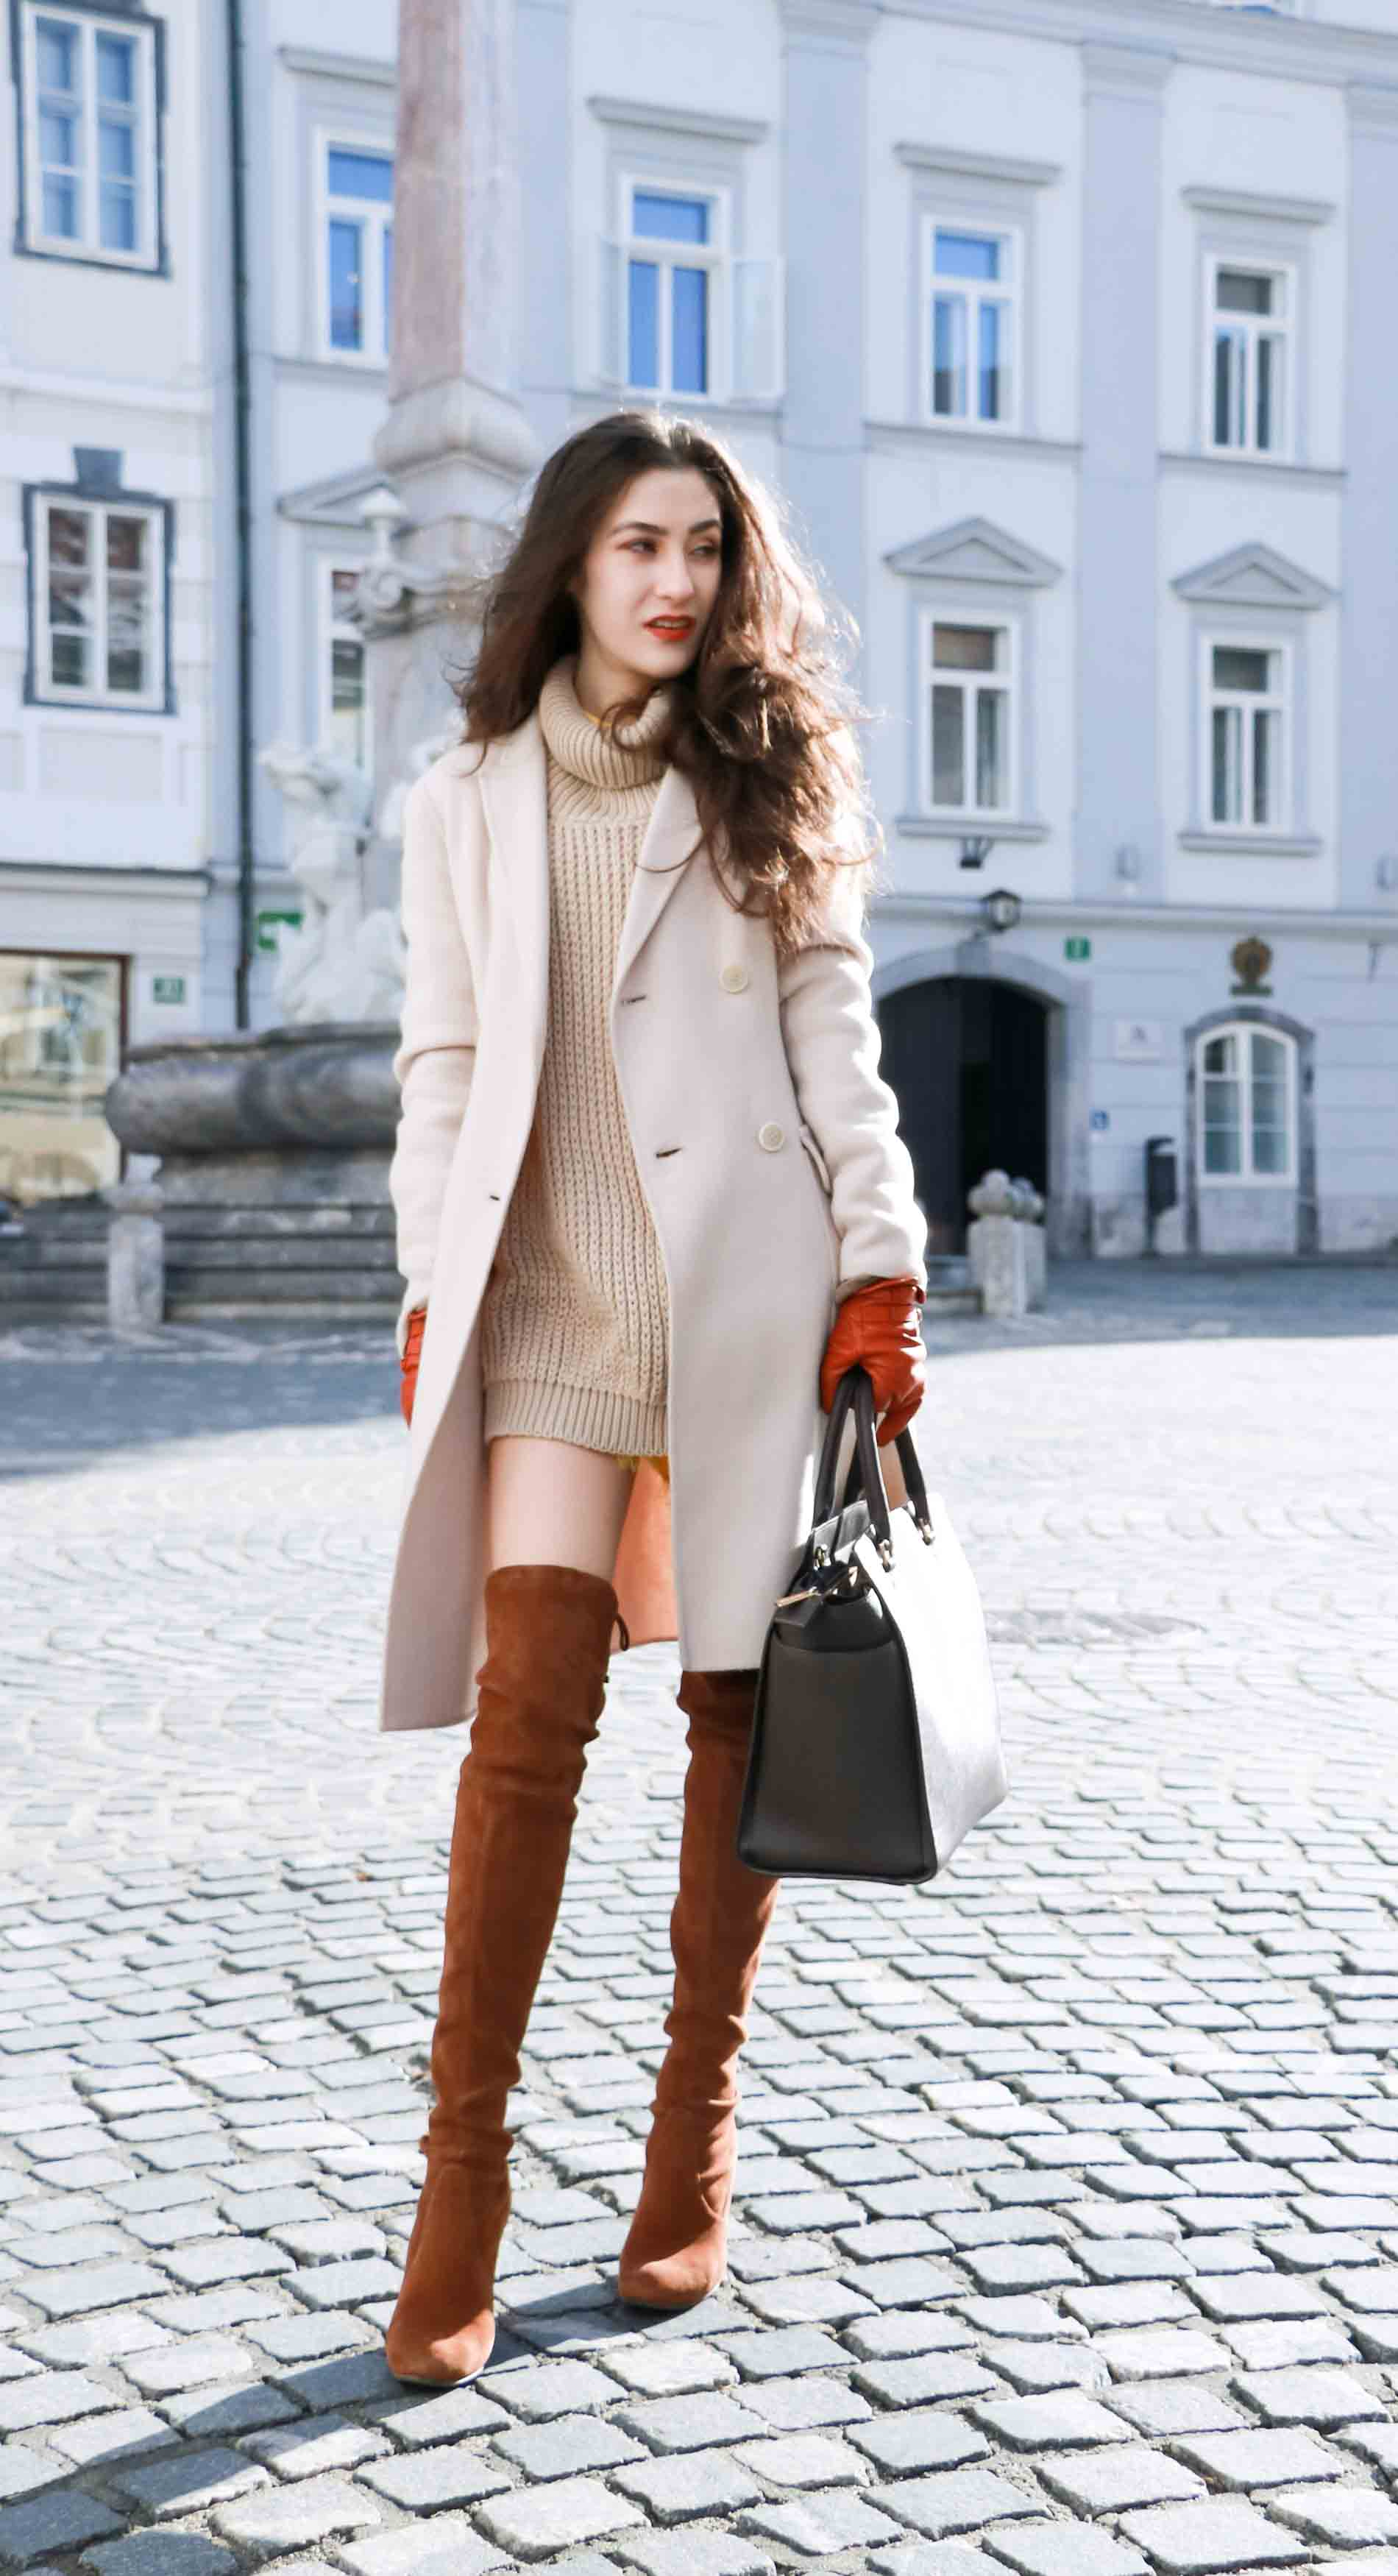 Fashion Blogger Veronika Lipar of Brunette from Wall dressed in double breasted coat, cable knit turtleneck camel sweater dress and Stuart Weitzman Highland boots, brown Michael Kors Selma bag, leather gloves